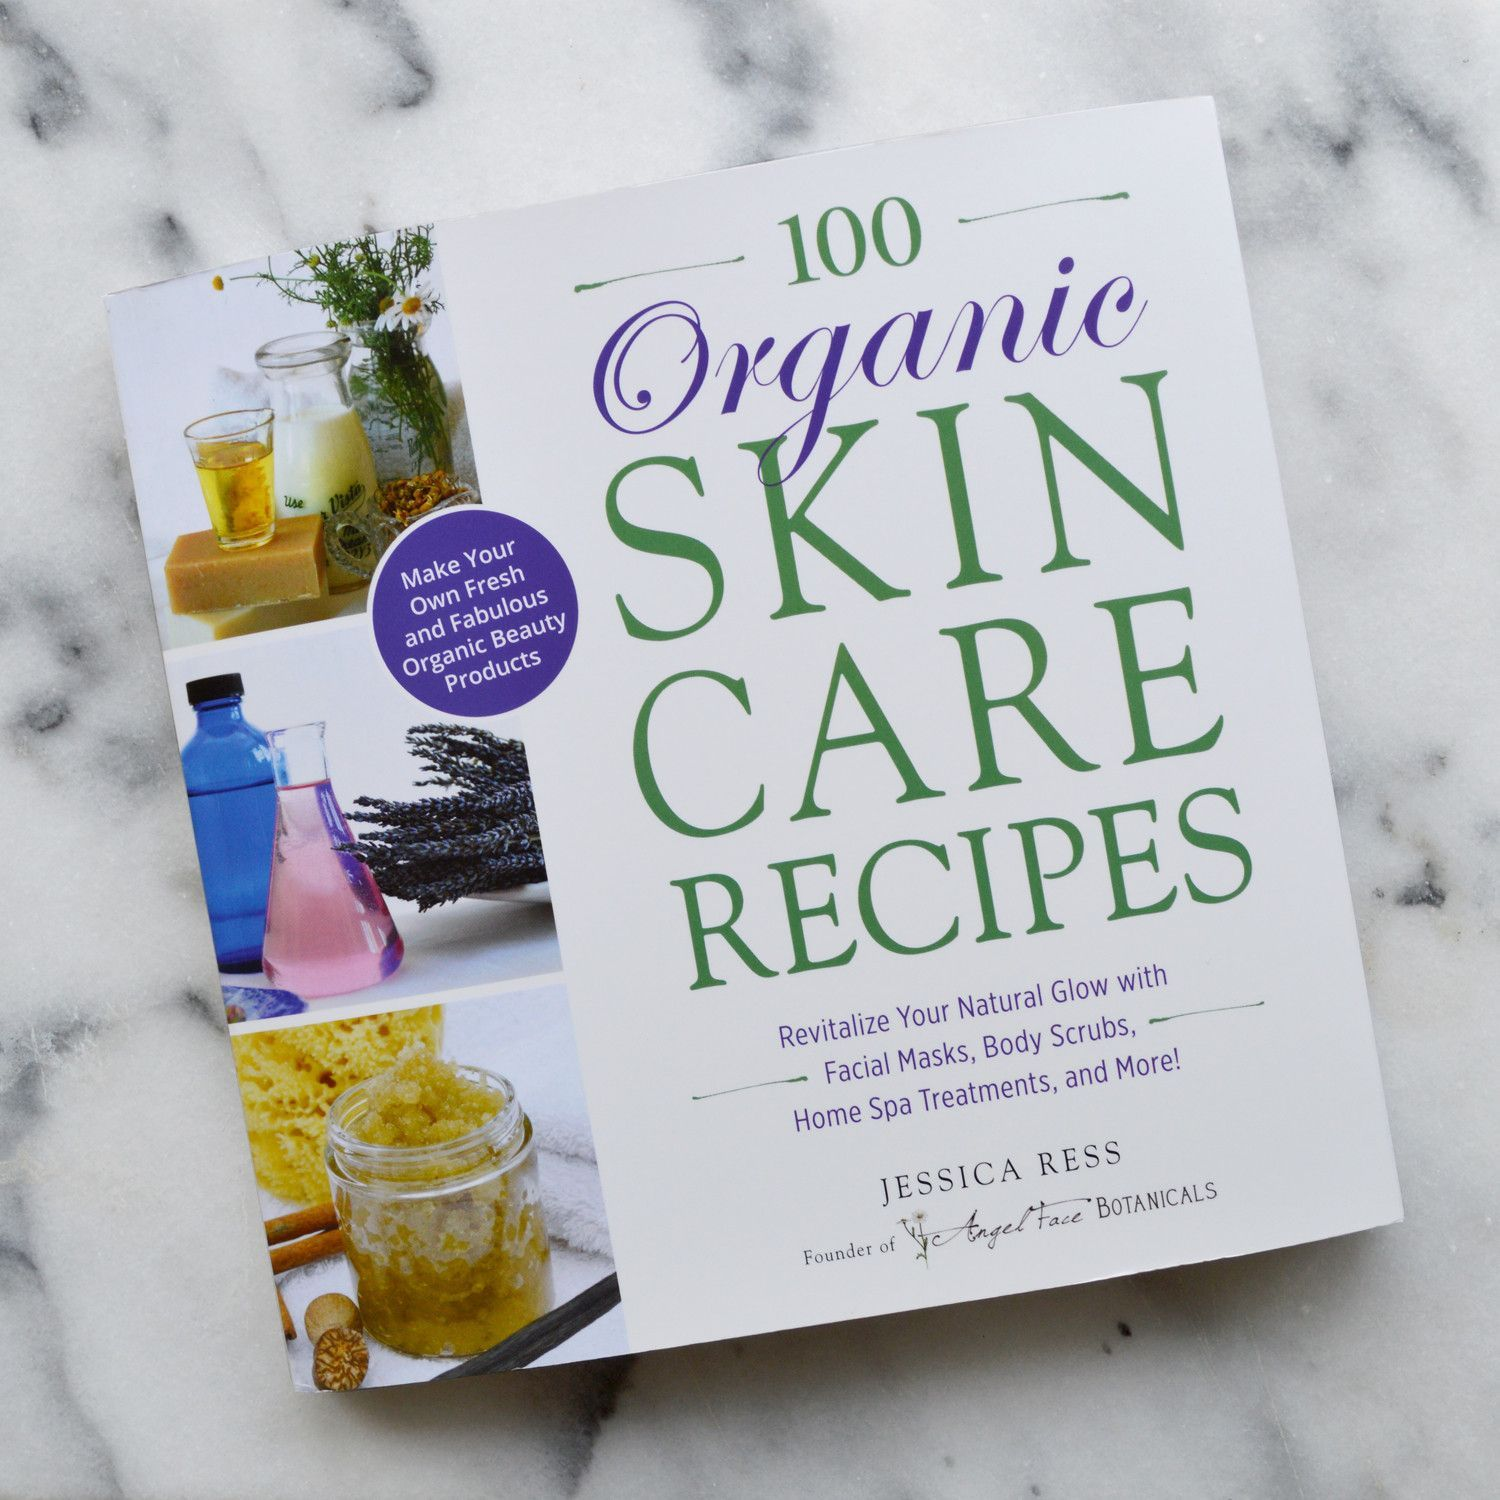 100 Organic Skincare Recipes Make Your Own Fresh And Fabulous Organic Beauty Products Organic Skin Care Recipes Organic Skin Care Skin Care Recipes